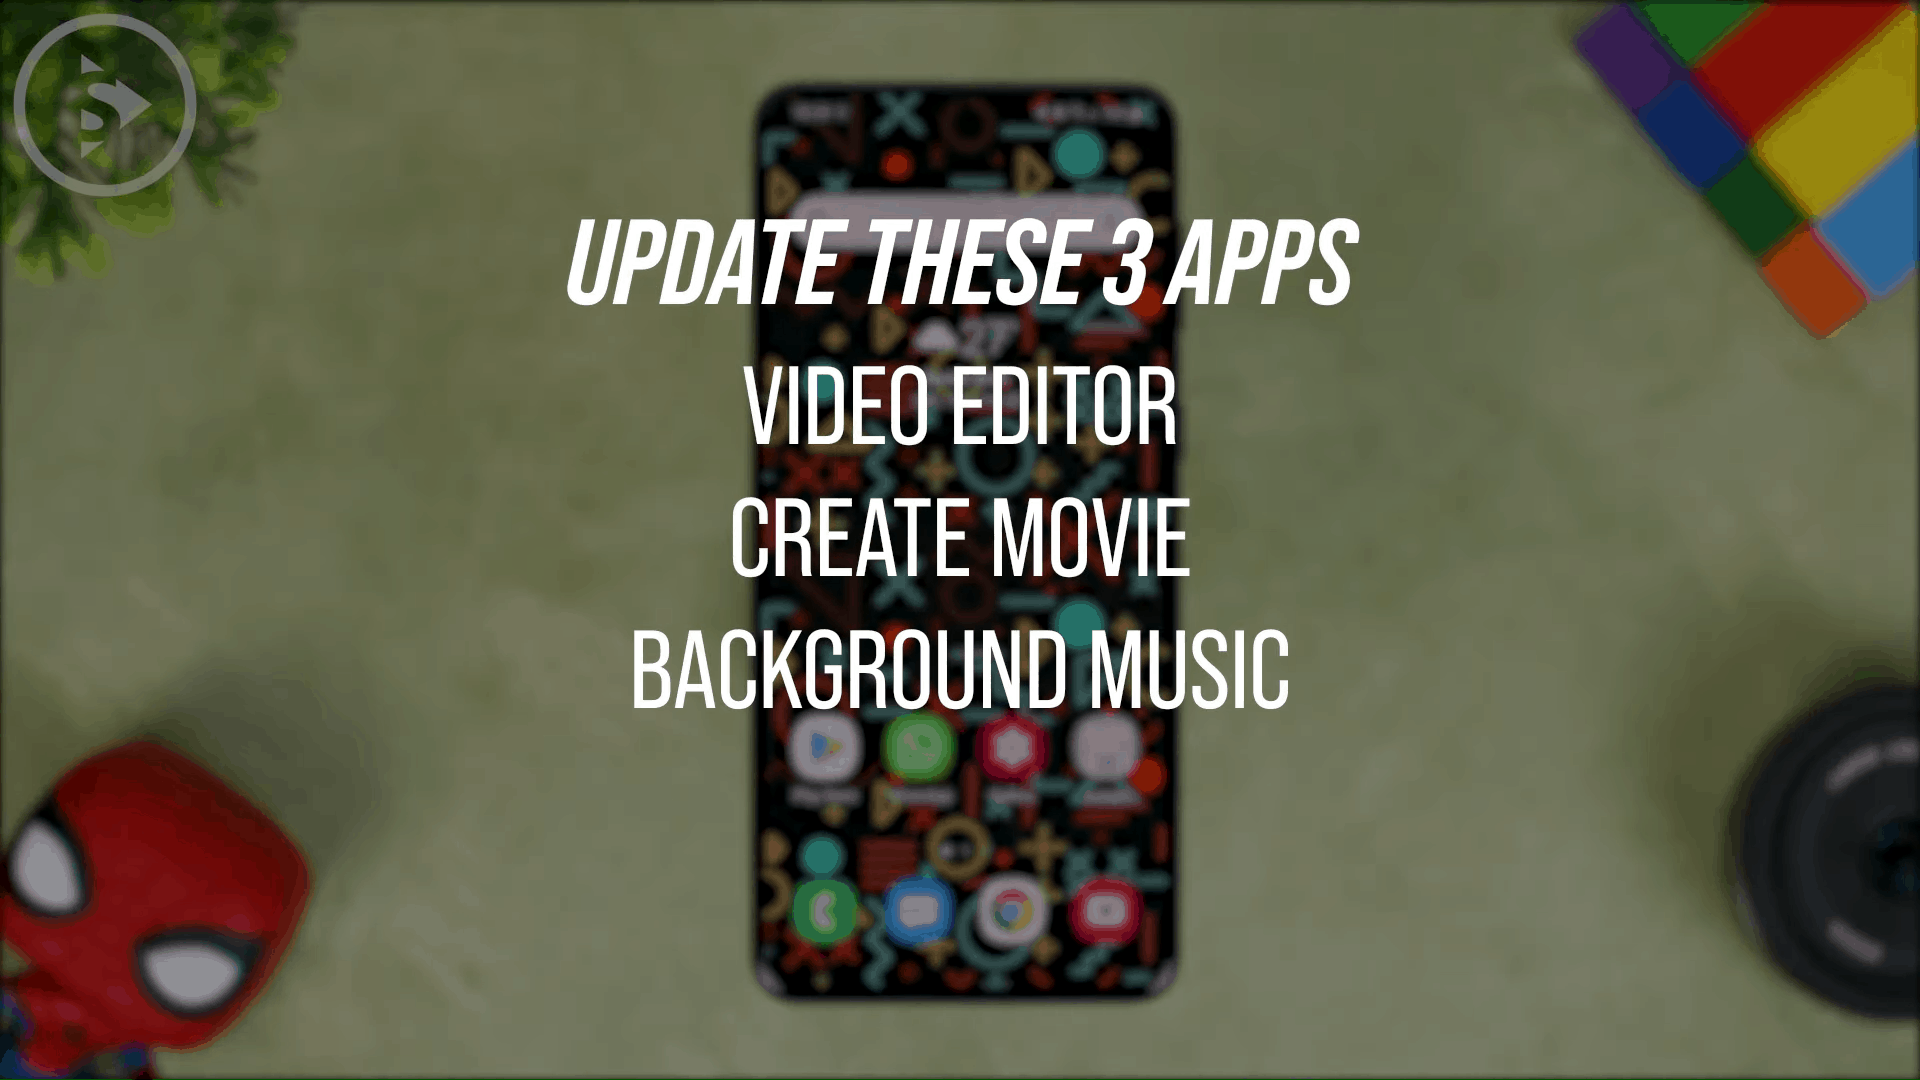 Update the Video Editor Application, Create Movie, and Background Music - 4 Latest Features To Edit Photos and Videos in Various Versions of One UI Without Third Party Apps